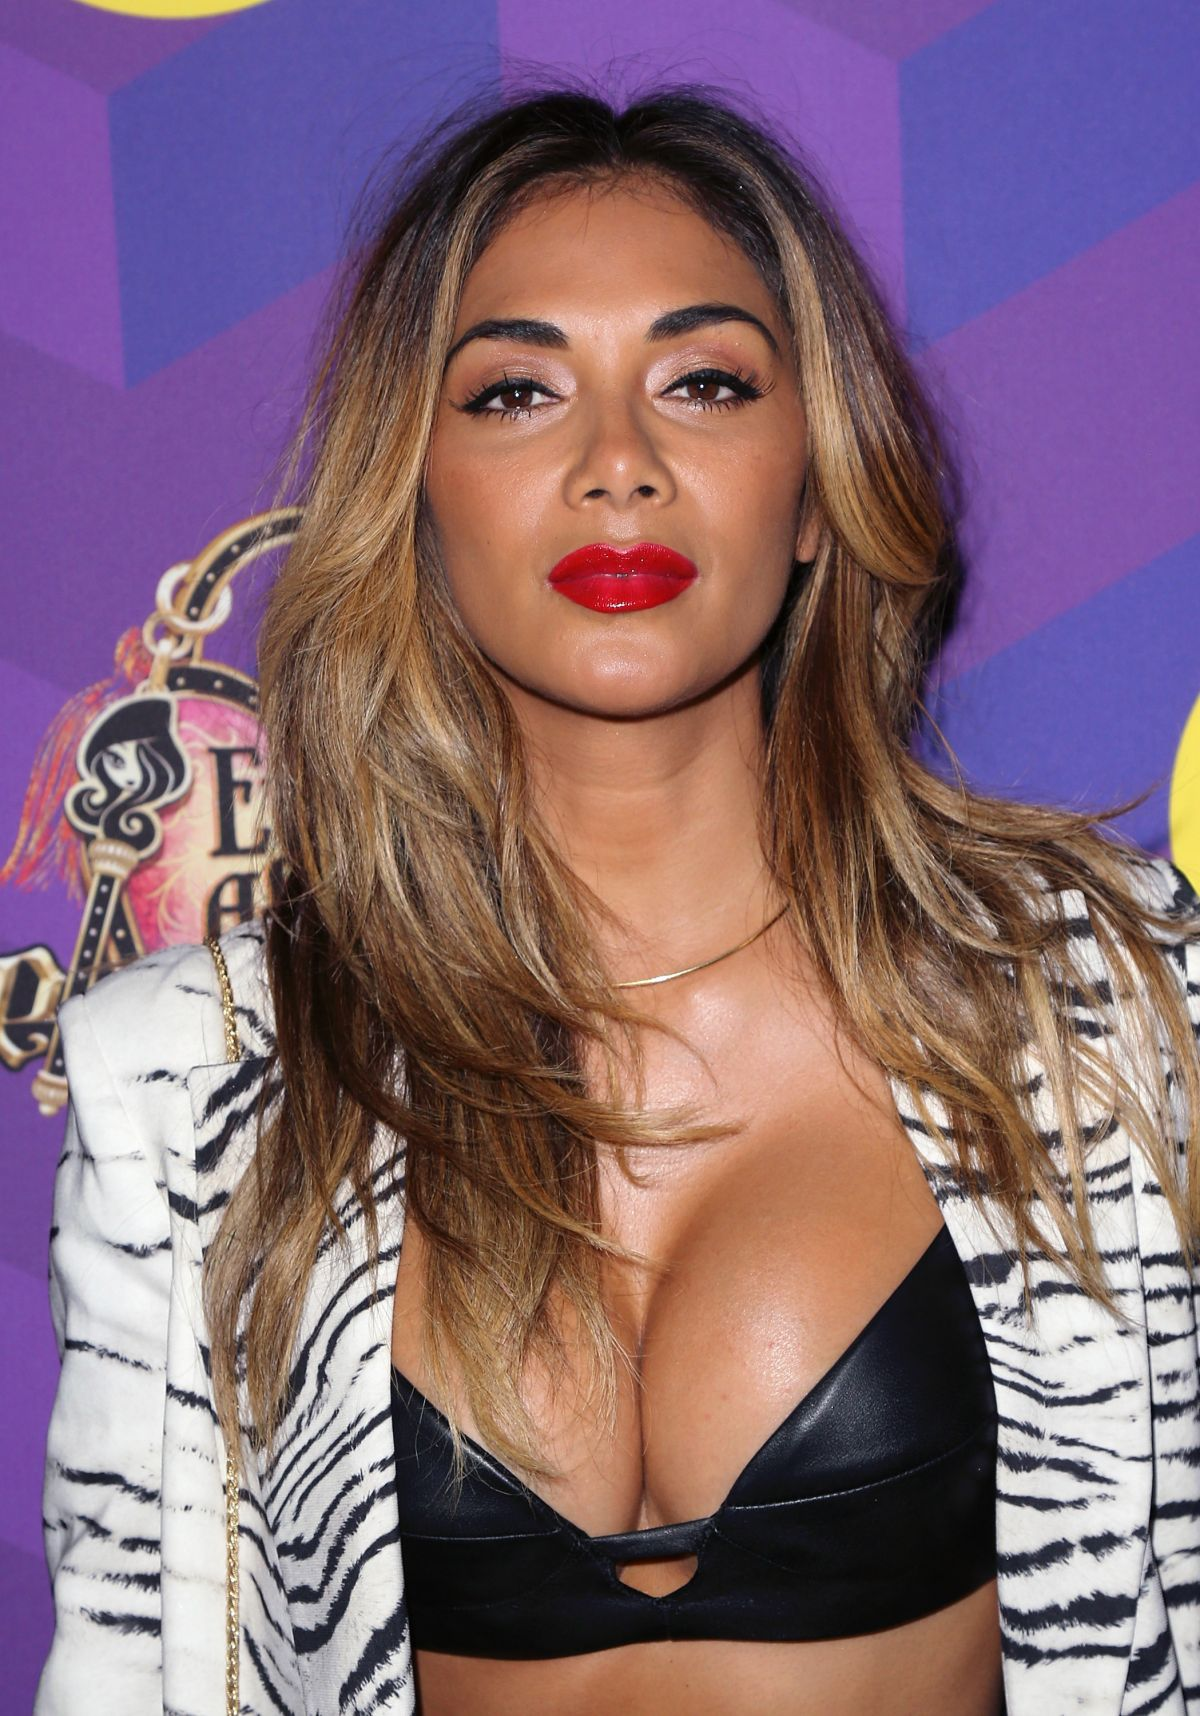 Nicole Scherzinger earned a 1.5 million dollar salary - leaving the net worth at 8 million in 2017